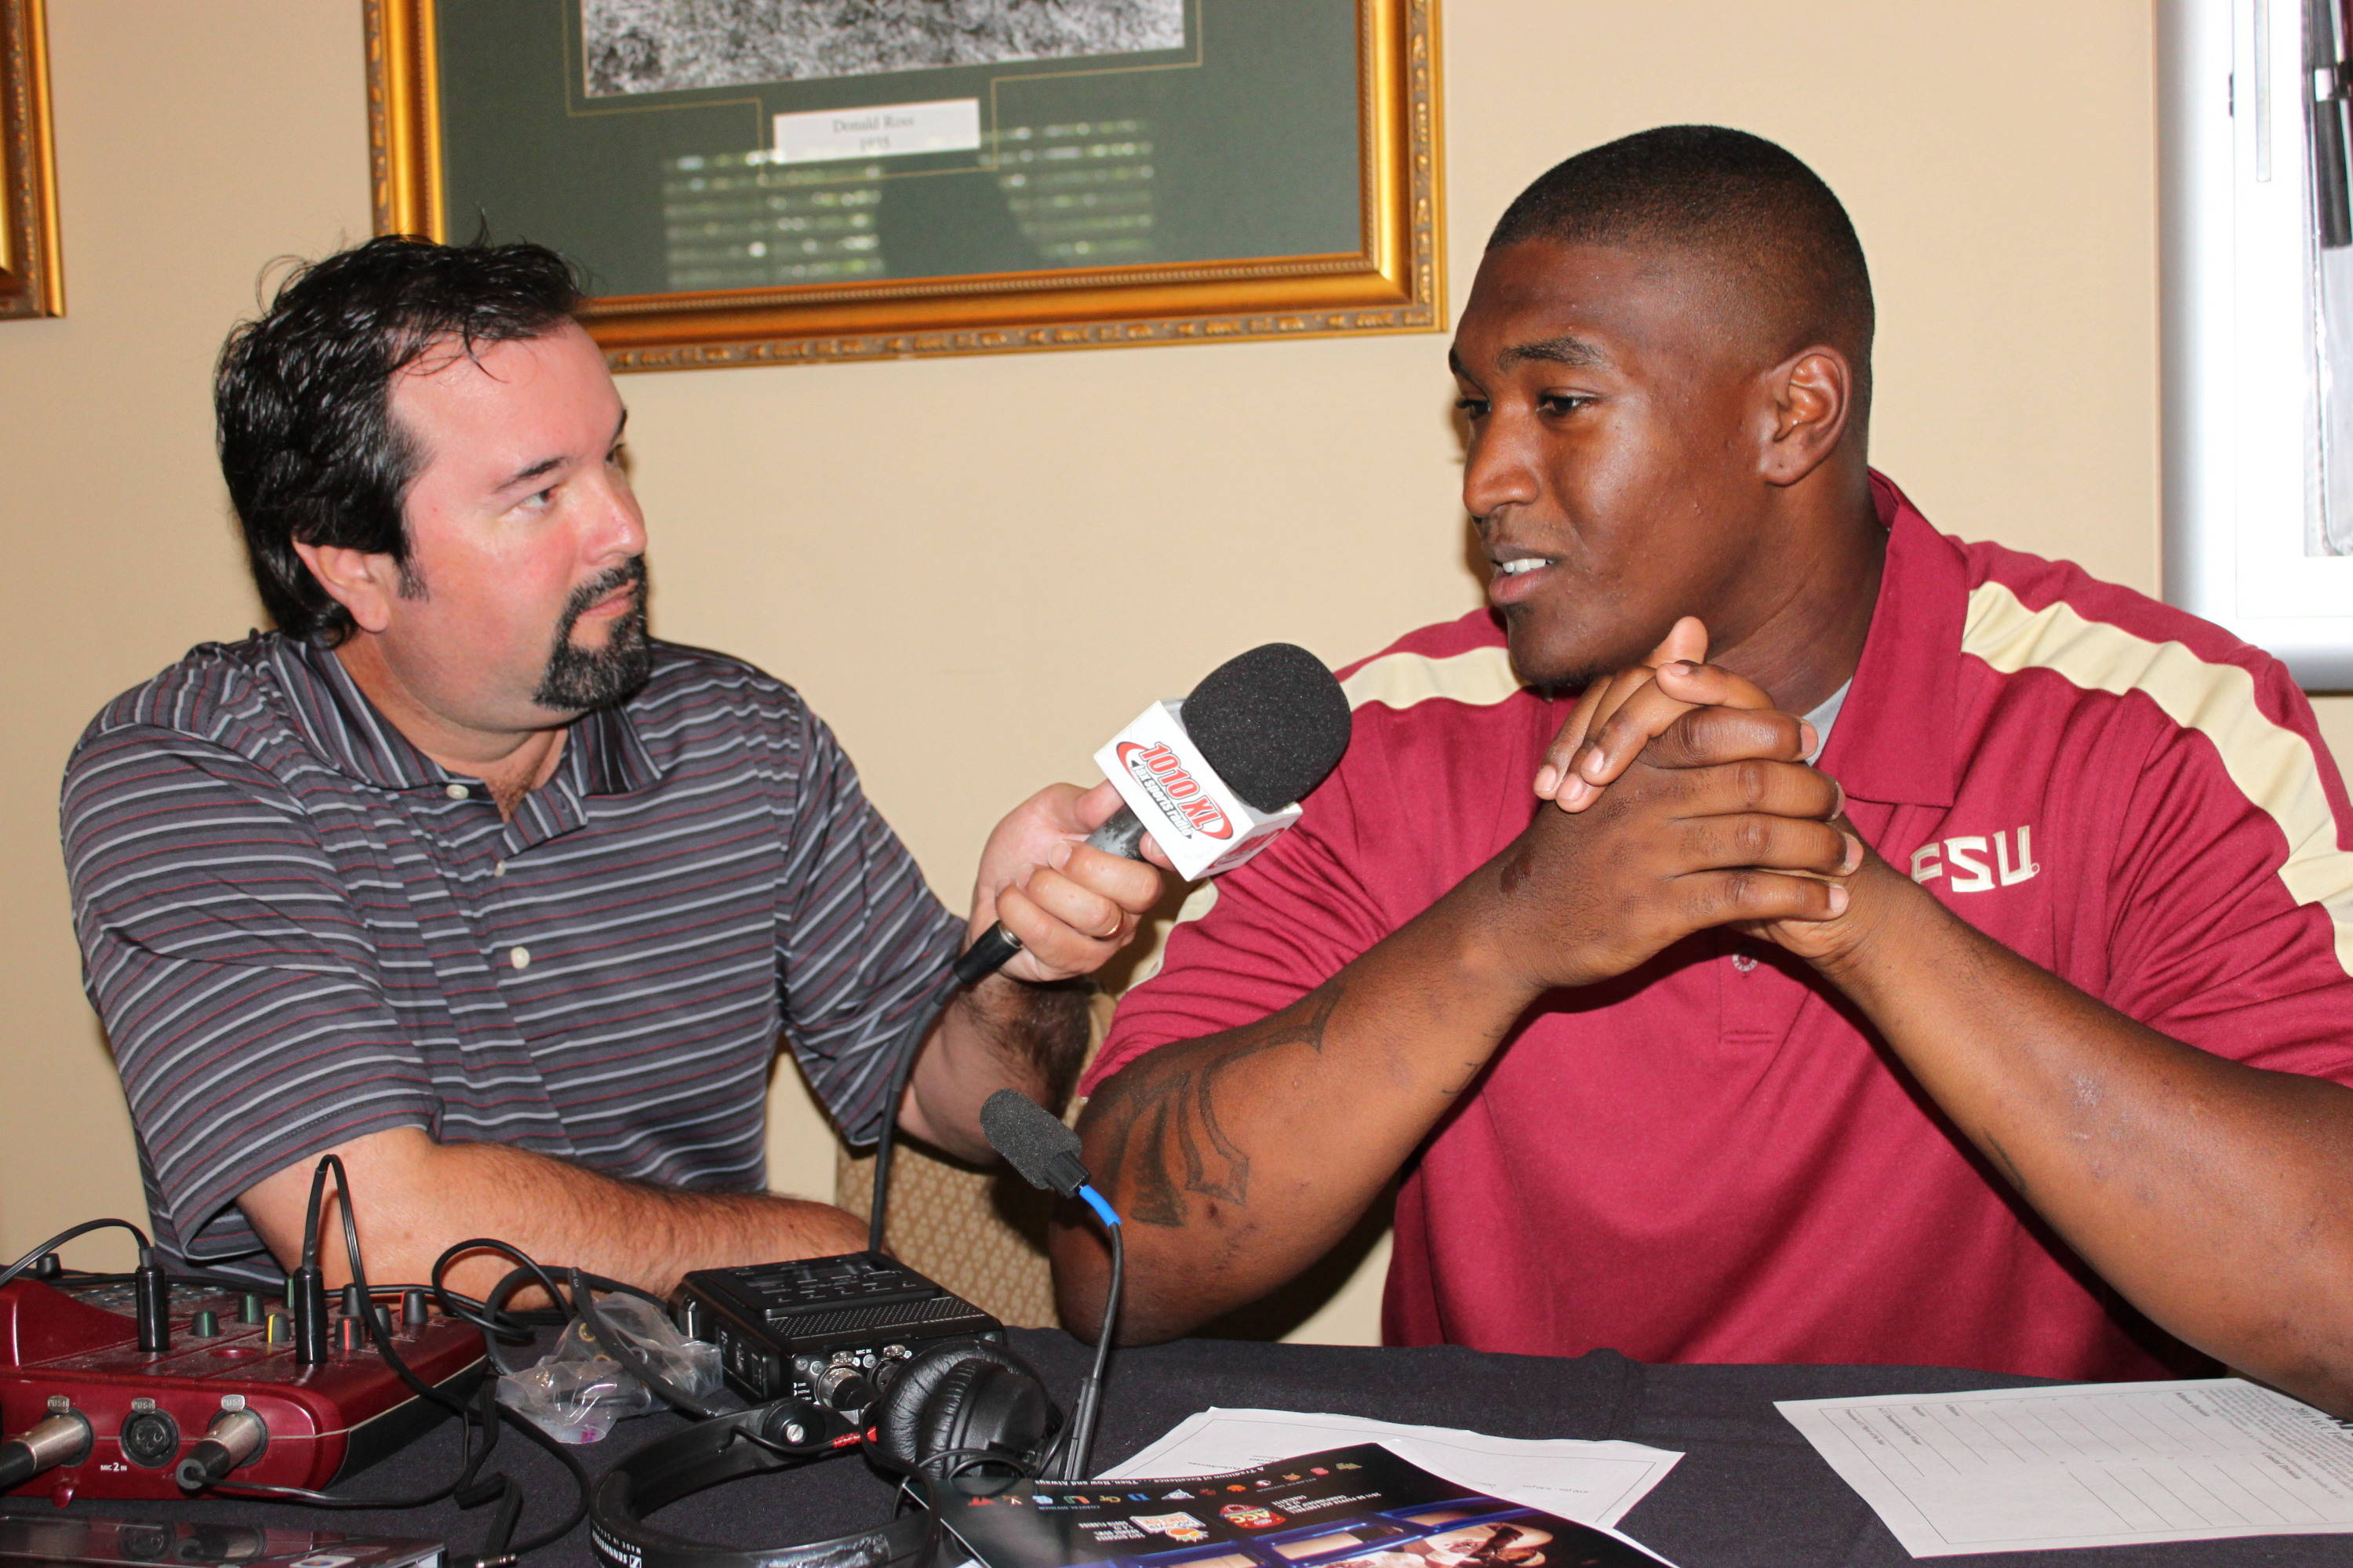 Brandon Jenkins worked his way around Radio Row during one of many stops on the day. This time he's chatting with Jacksonville 1010XL's Joe Cowart.